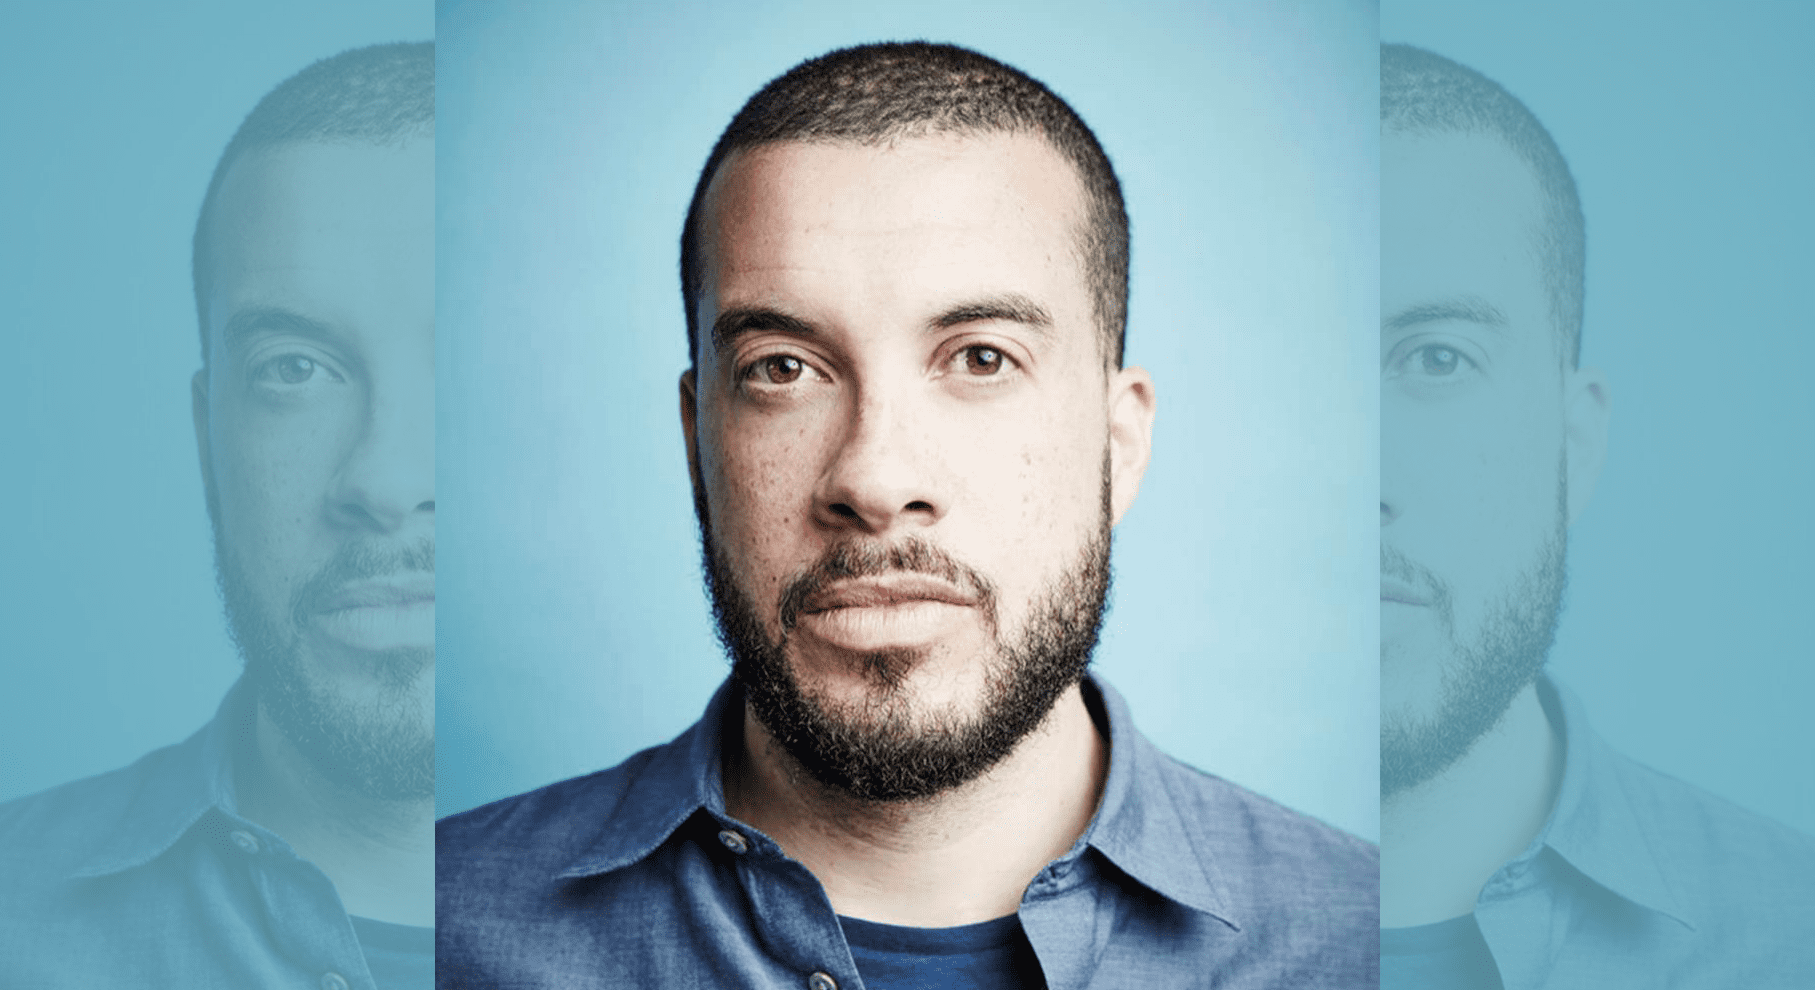 How I Got Over: A Conversation with 'OJ: Made in America' Director Ezra Edelman